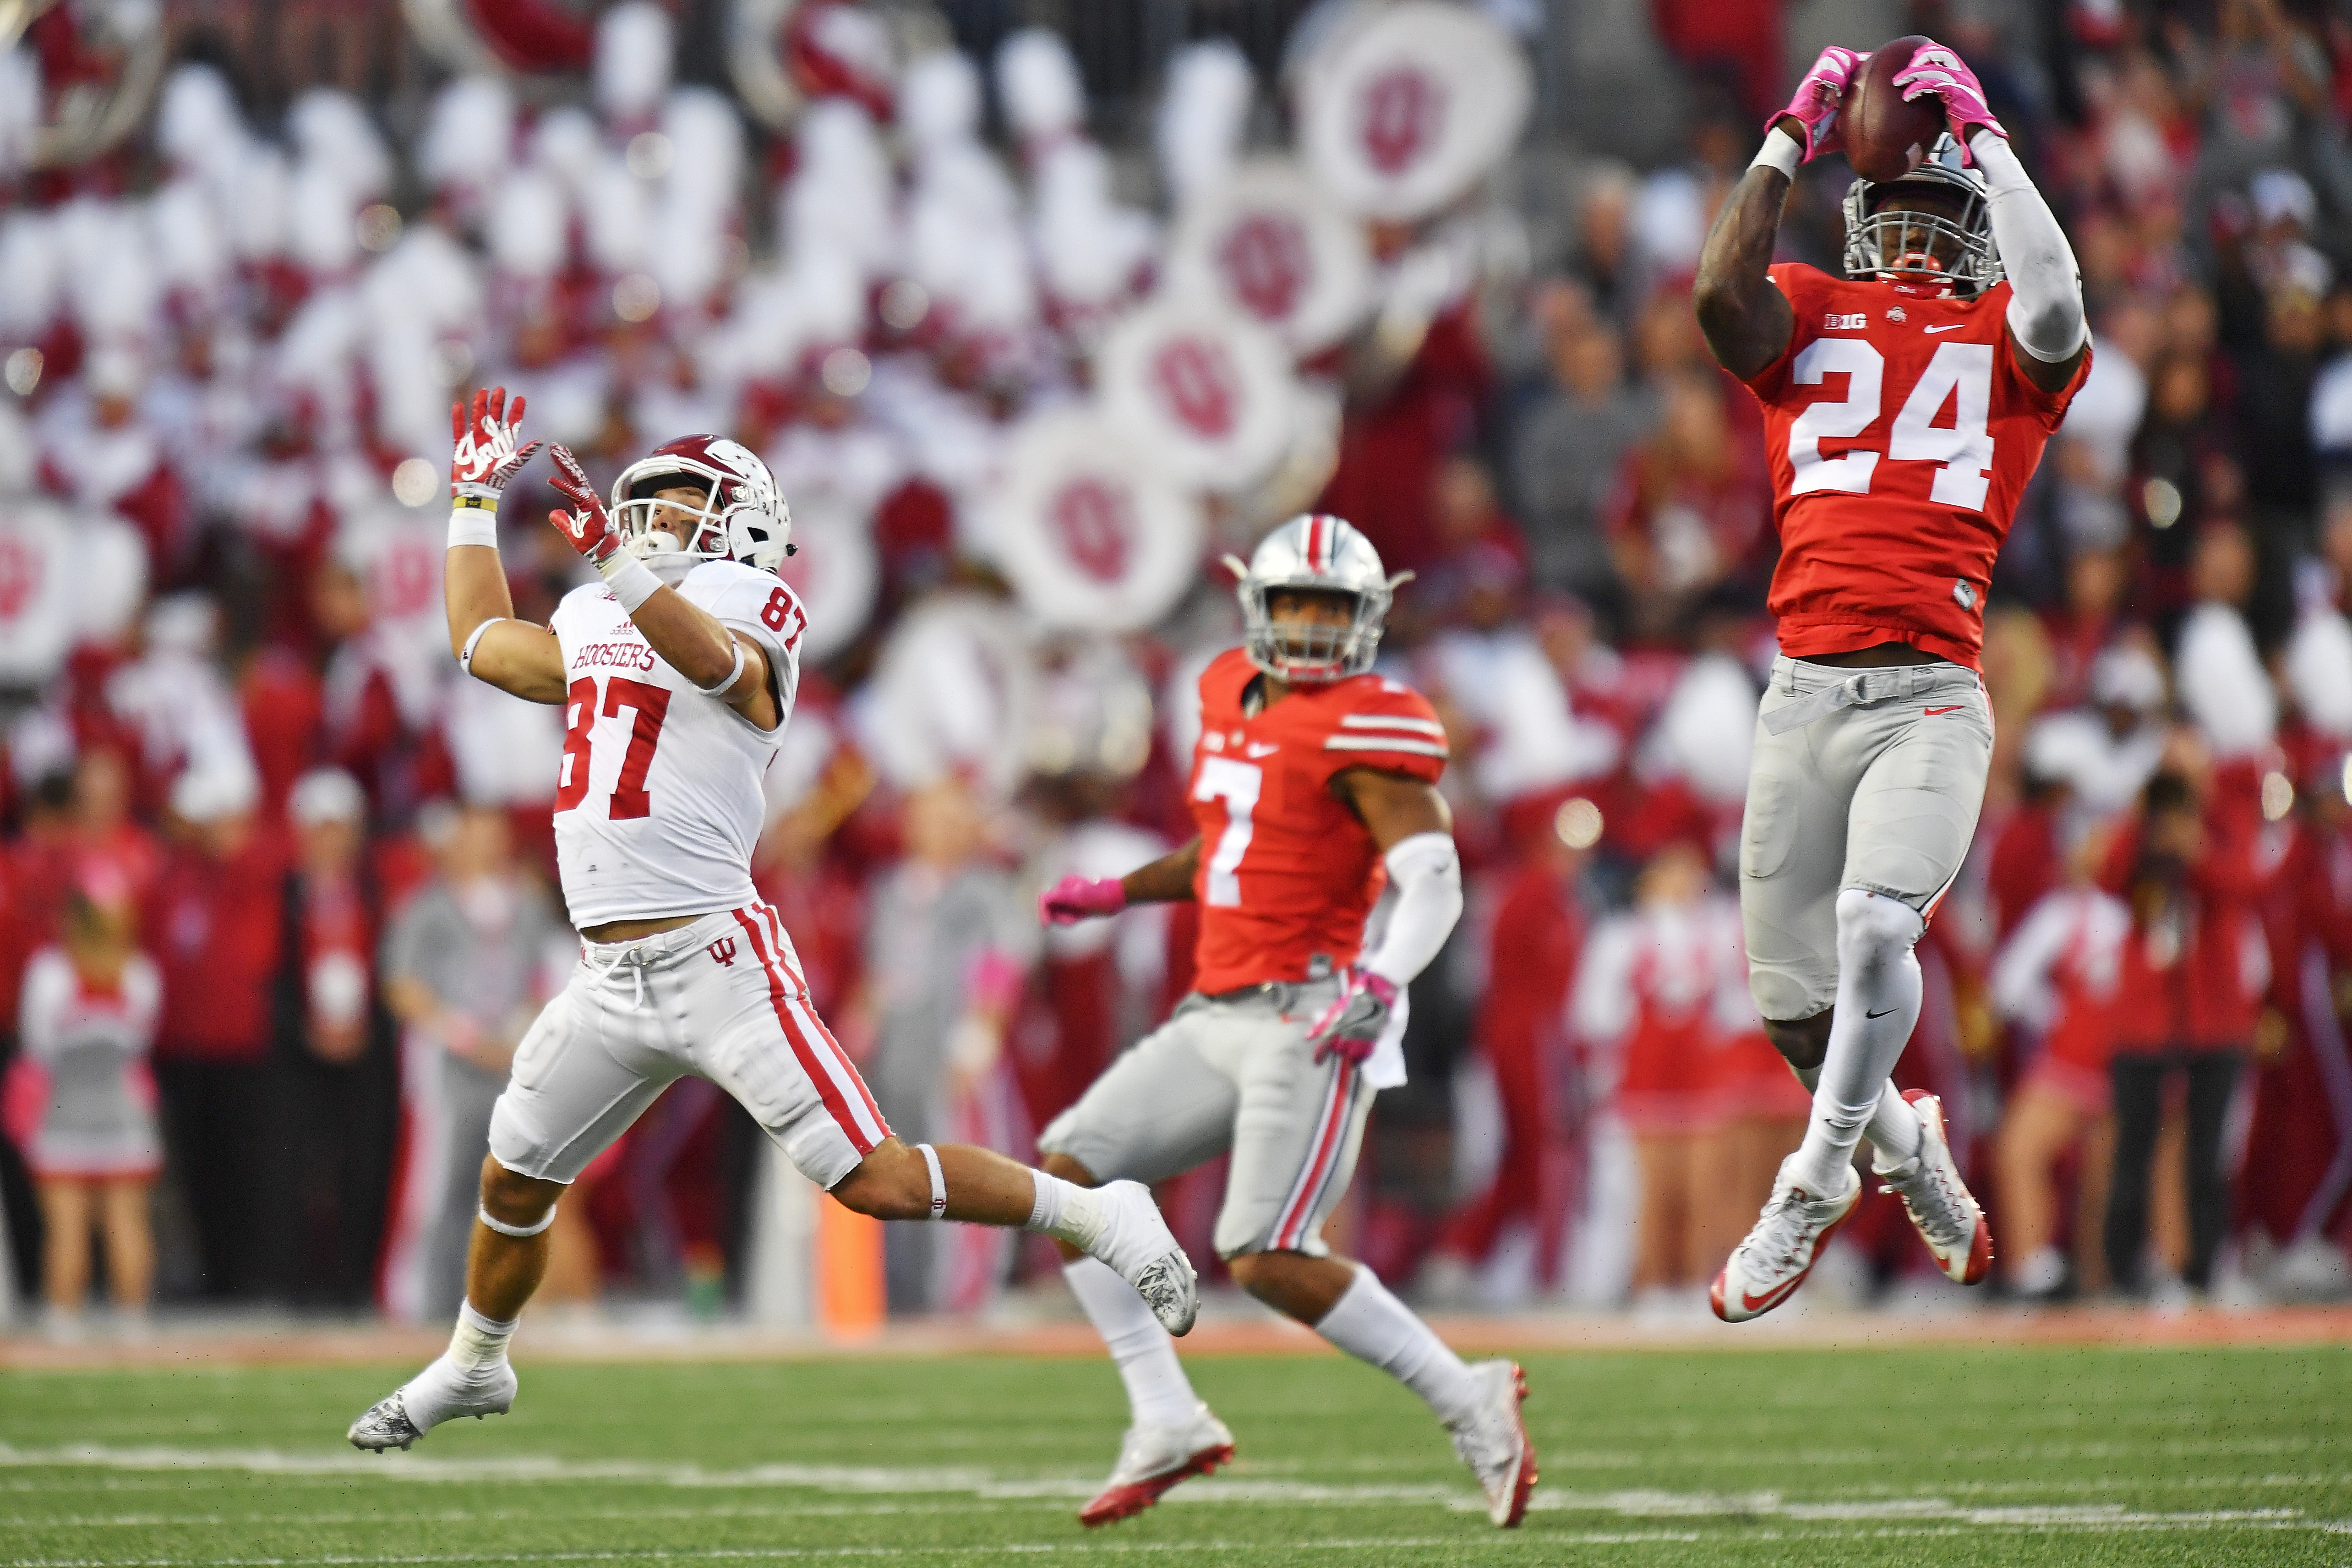 Ohio State's Malik Hooker (24) is a popular pick for the Buffalo Bills in early mock drafts. (Getty Images)